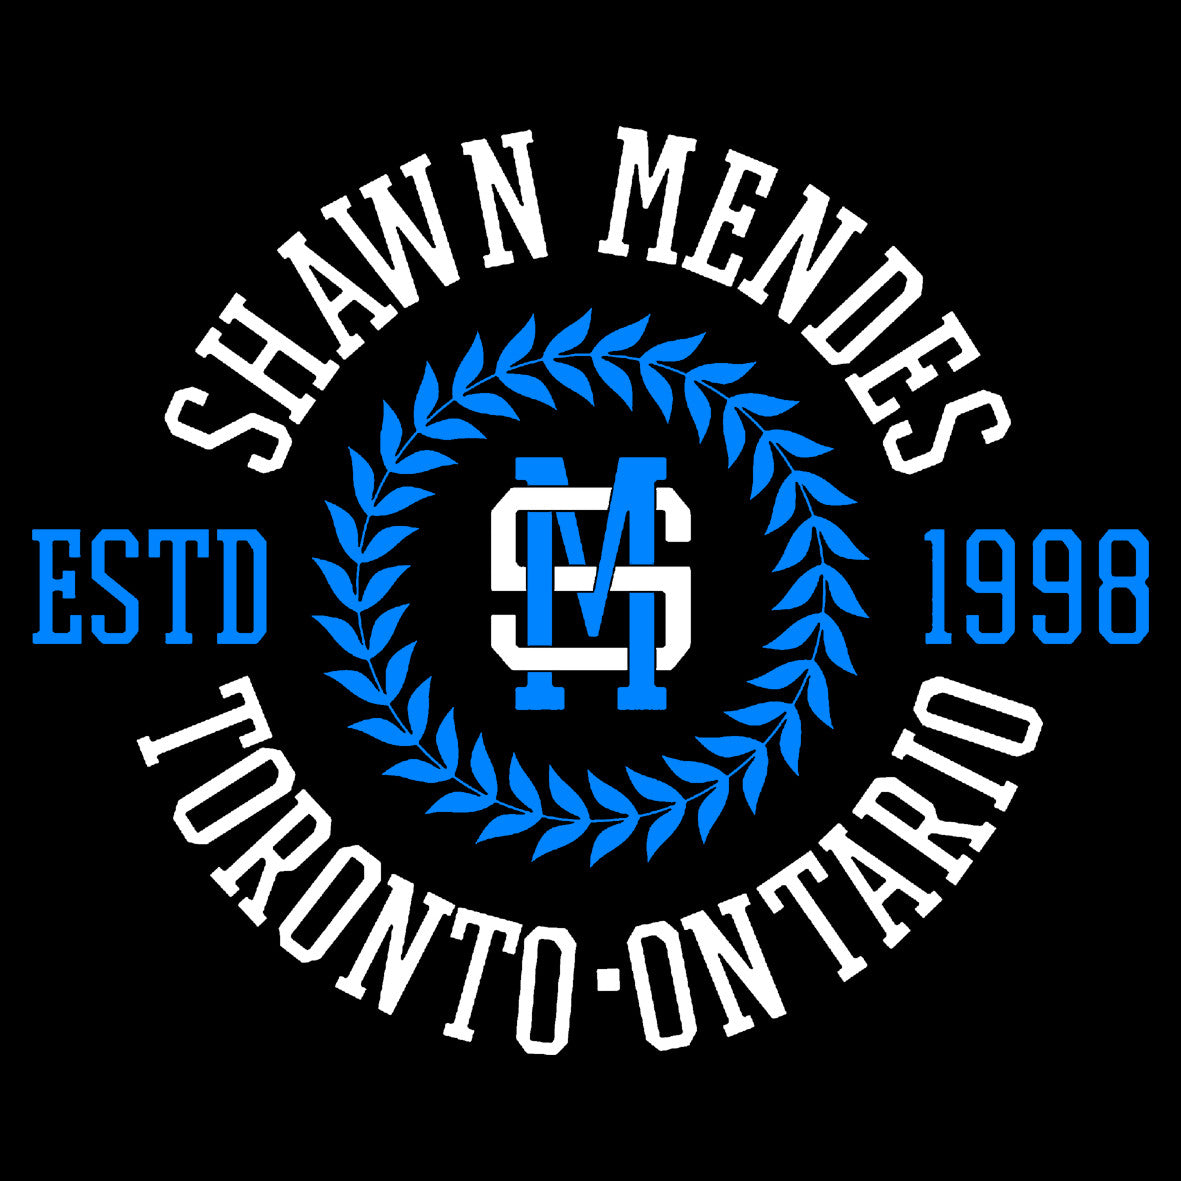 Shawn Mendes 5 Central T Shirts